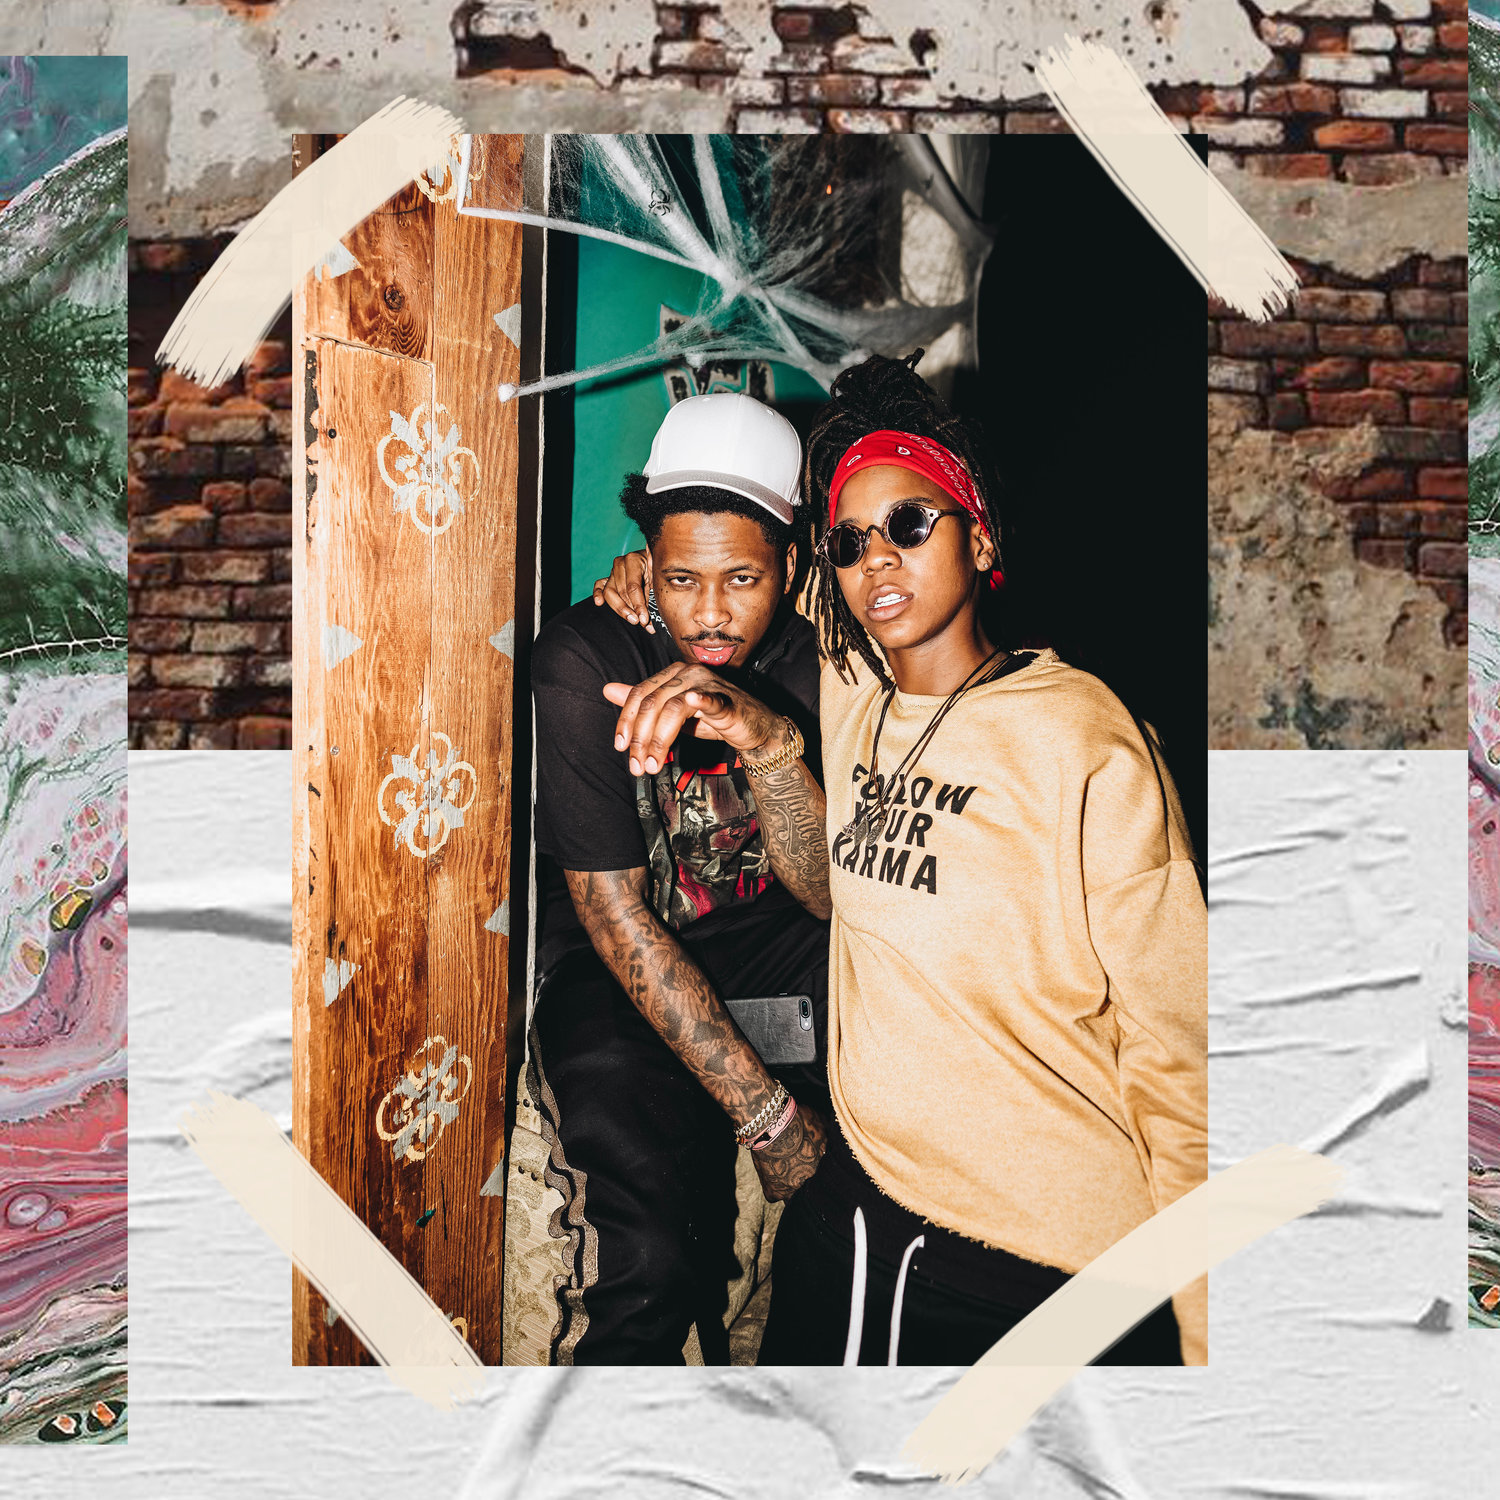 YG AND GIZZLE ATTEND TY DOLLA $IGN'S BEACH HOUSE 3 LISTENING PARTY OCTOBER 31 / PHOTO CREDIT: KAITO / DESIGN CREDIT: VANESSA ACOSTA